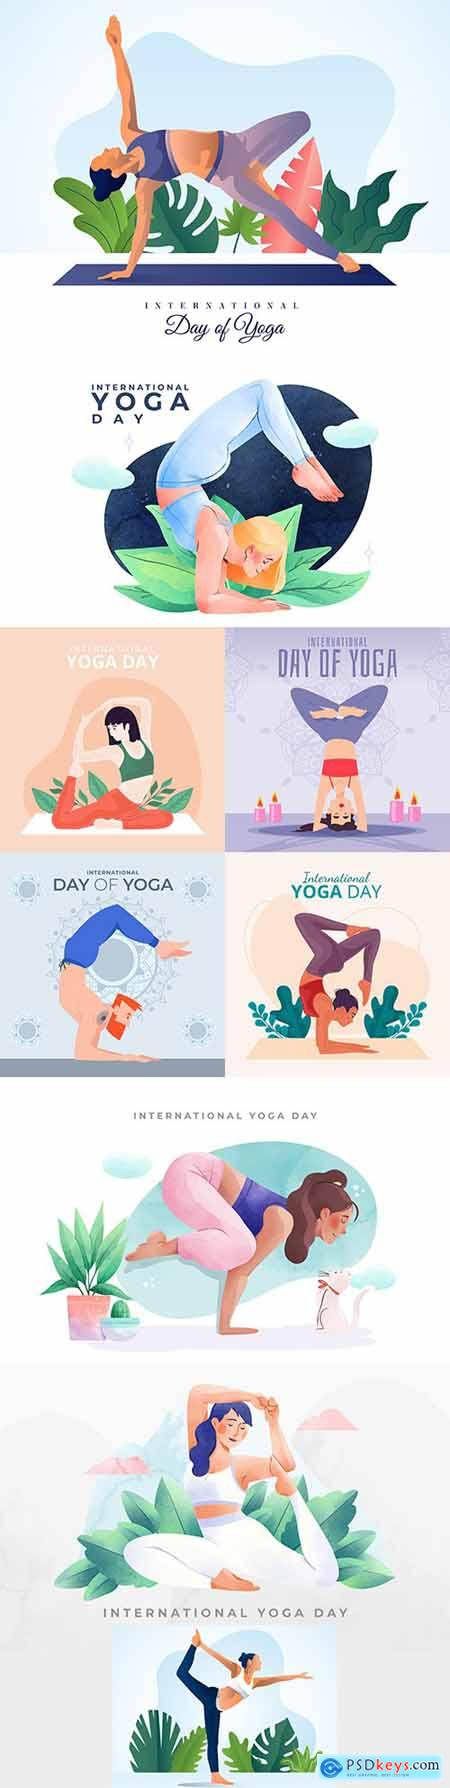 Yoga International day and meditation design illustration 3